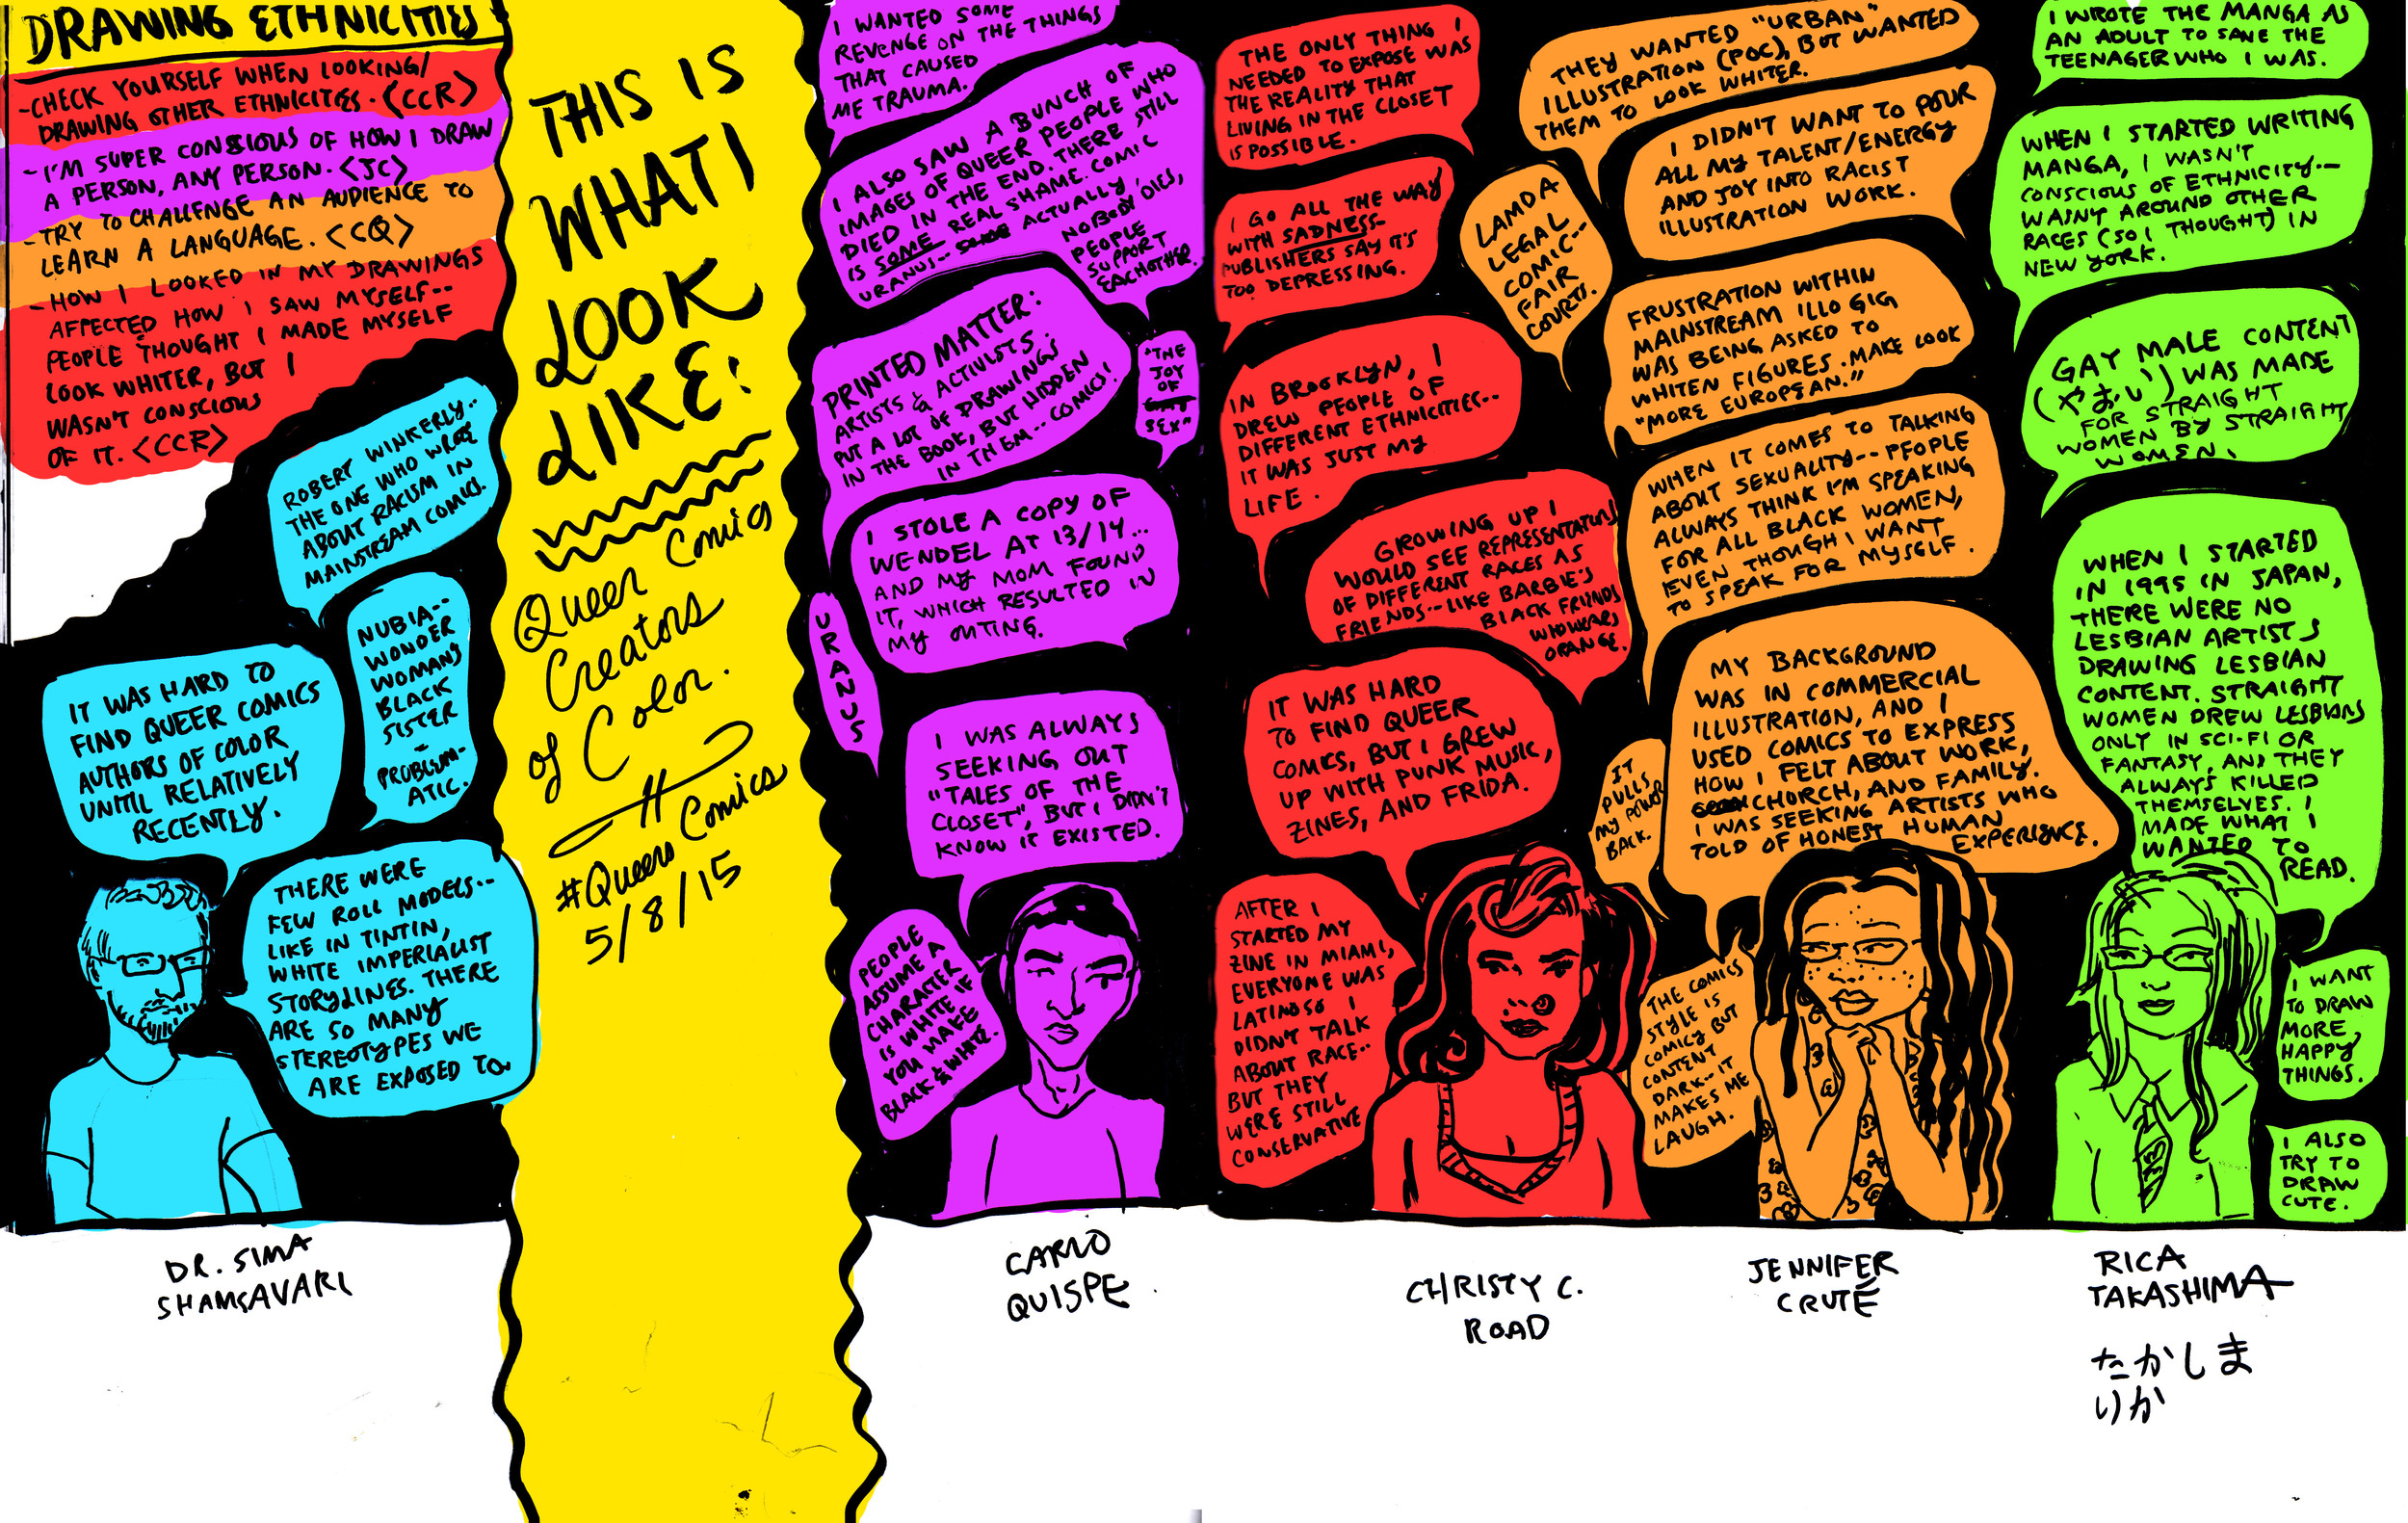 Panel: This is what I look like -- queer cartoonists of color